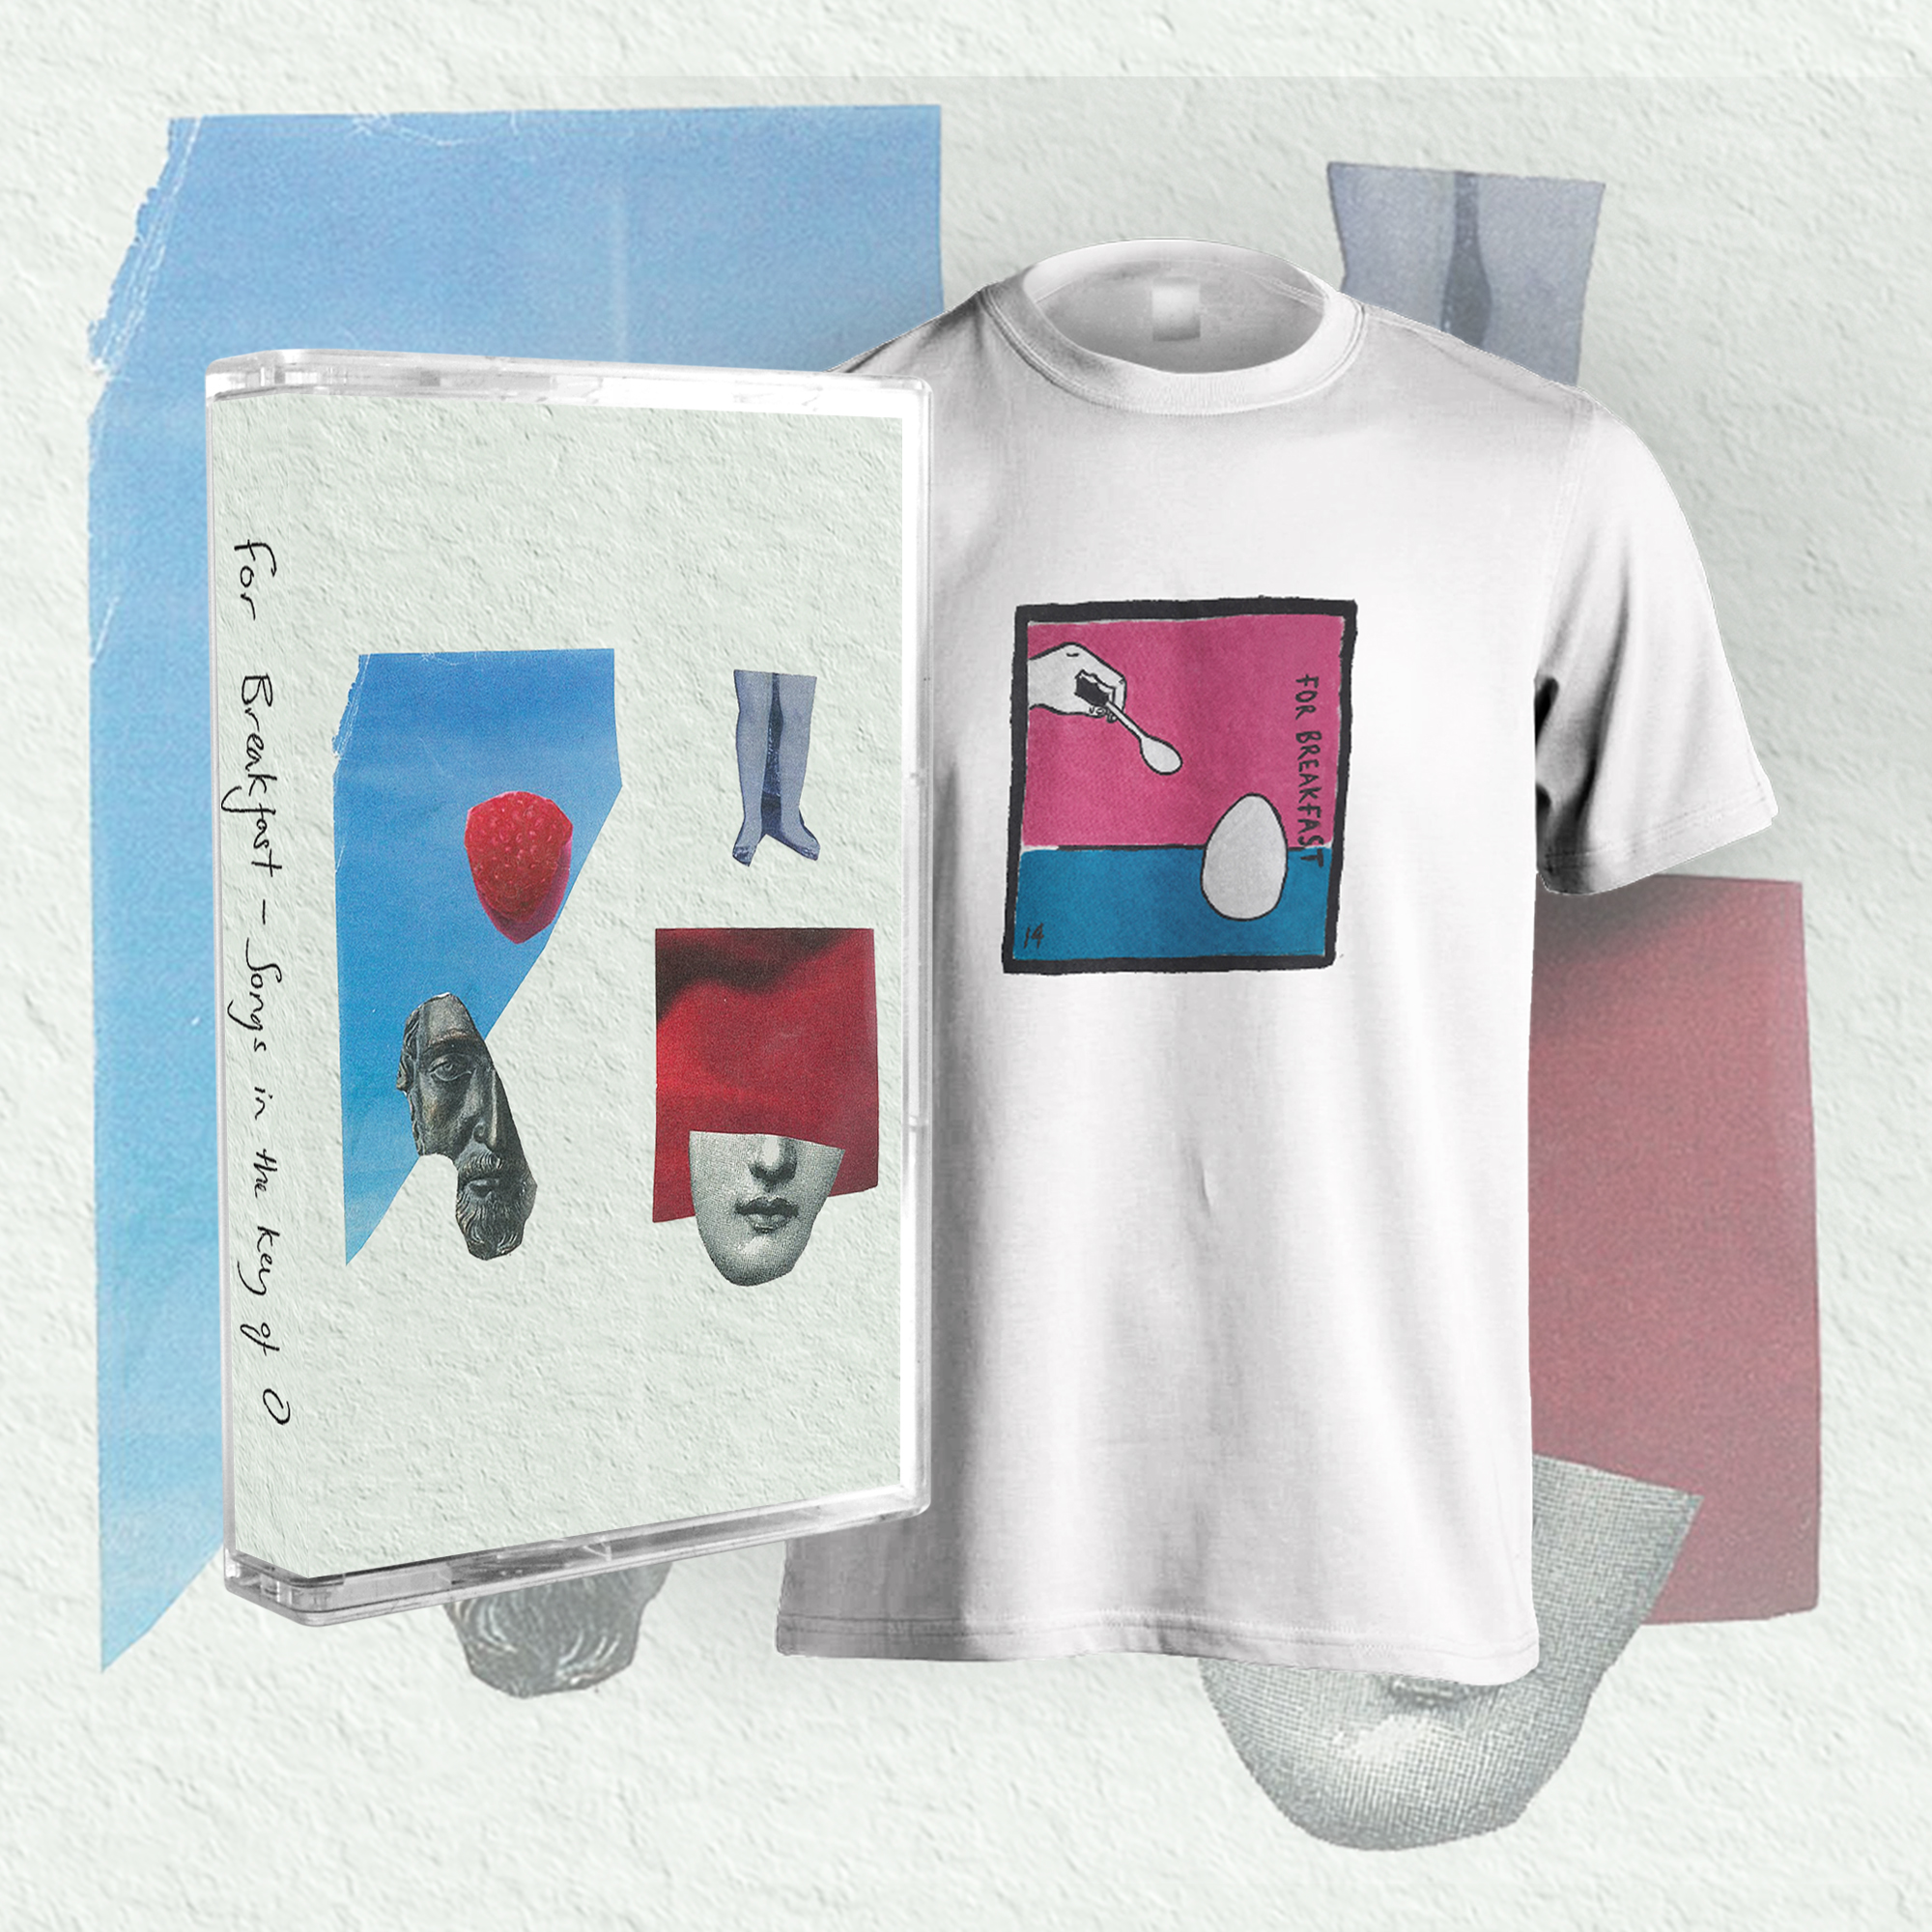 For Breakfast EP Cassette, Egg Shirt + Digital